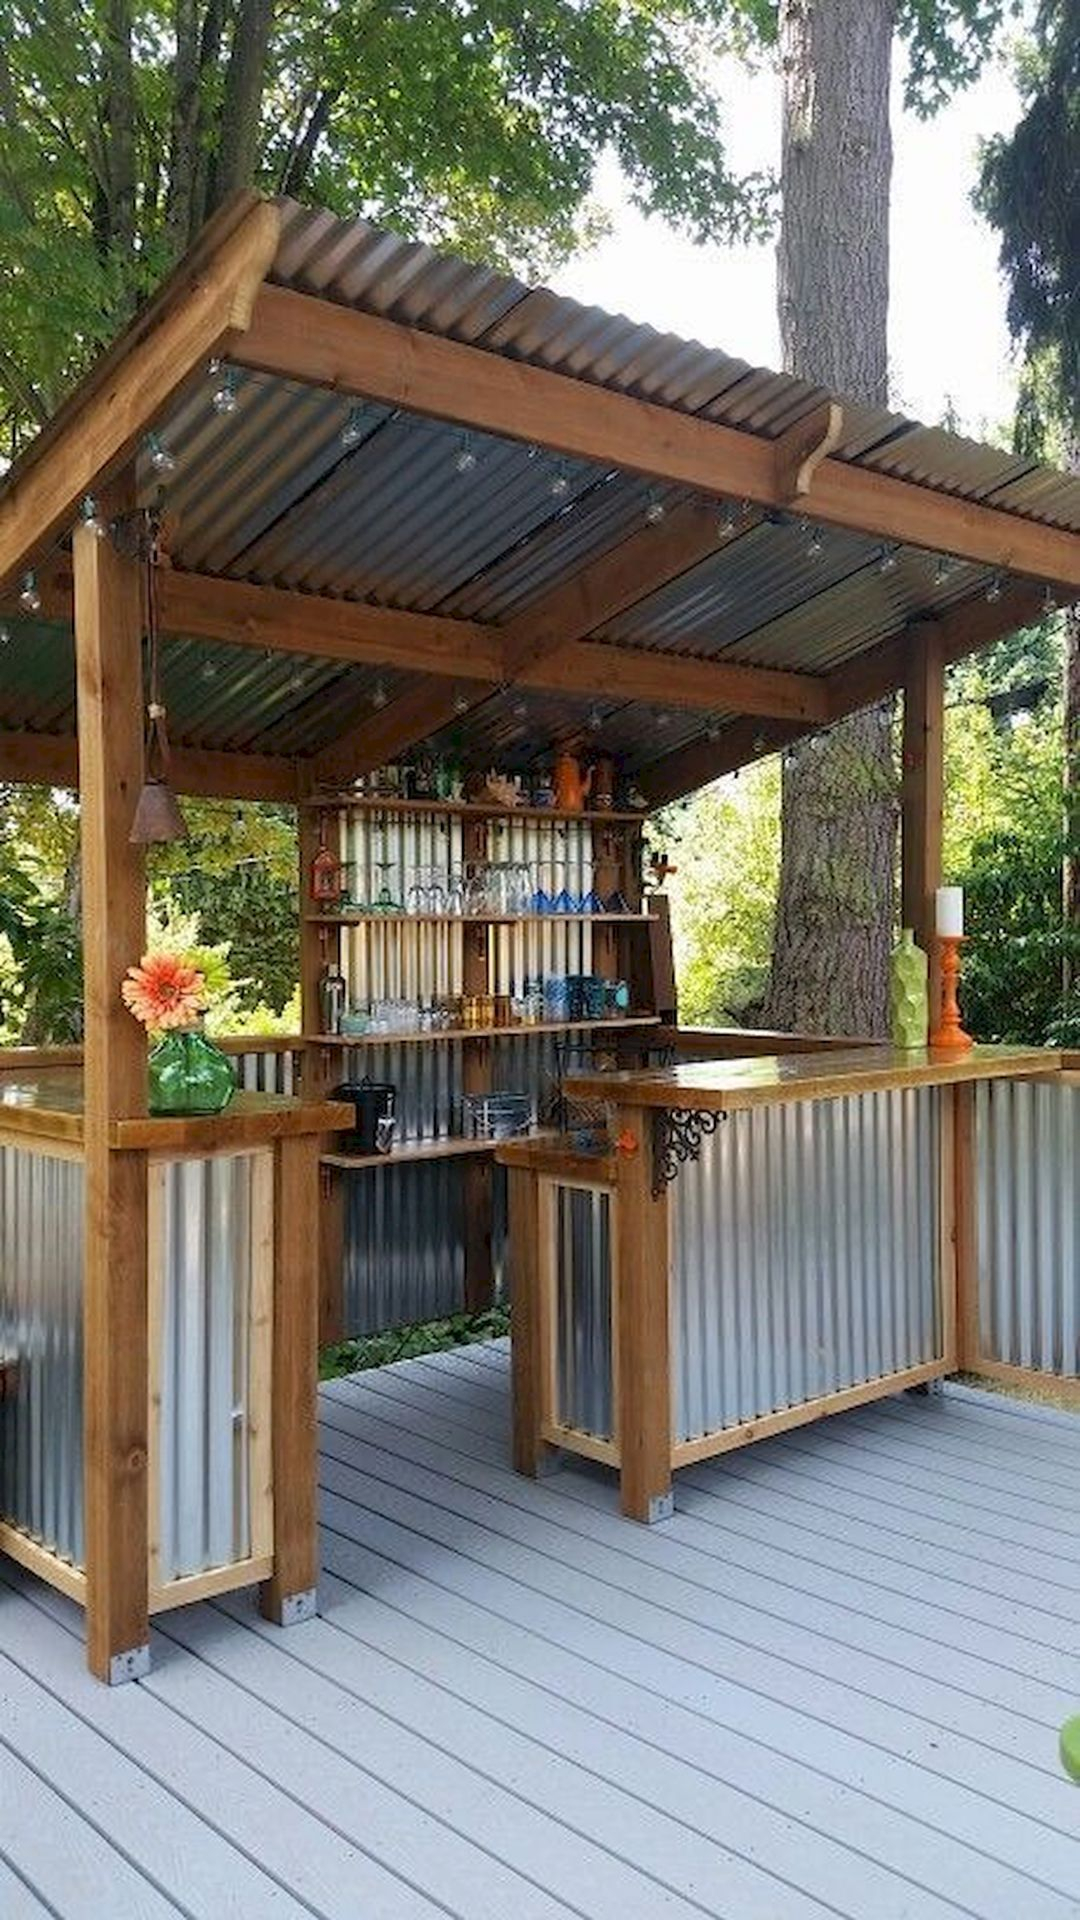 Backyard Patio Ideas 80 Bachelor Pad Backyard Bar Outdoor within Backyard Tiki Ideas